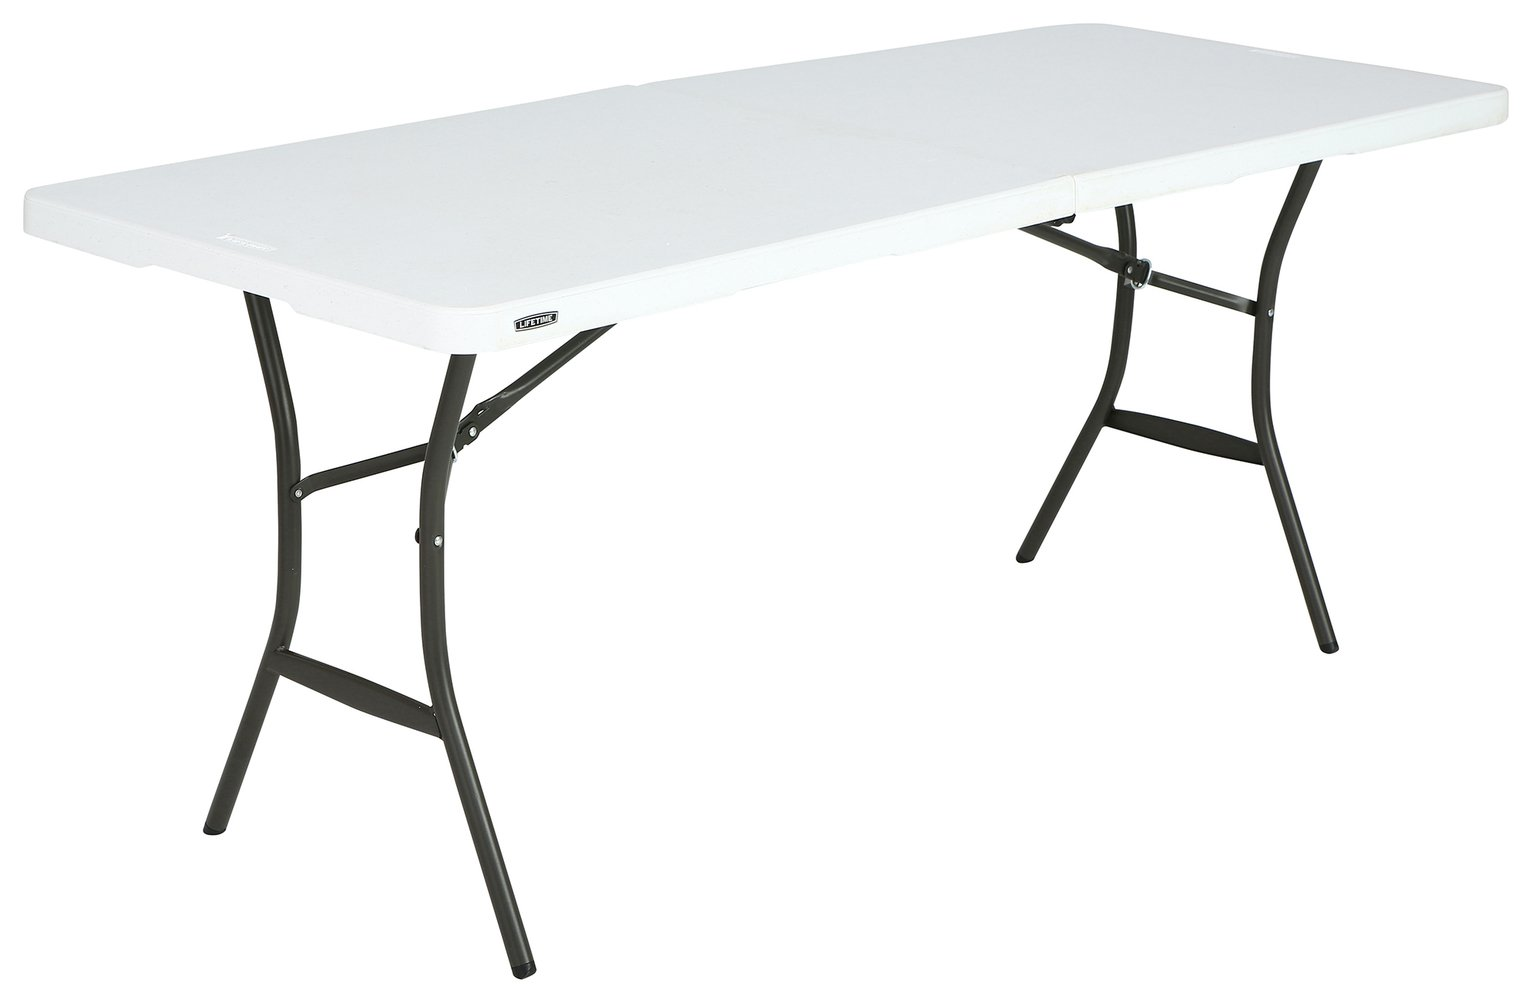 Lifetime 6ft Folding Table at Argos from Lifetime